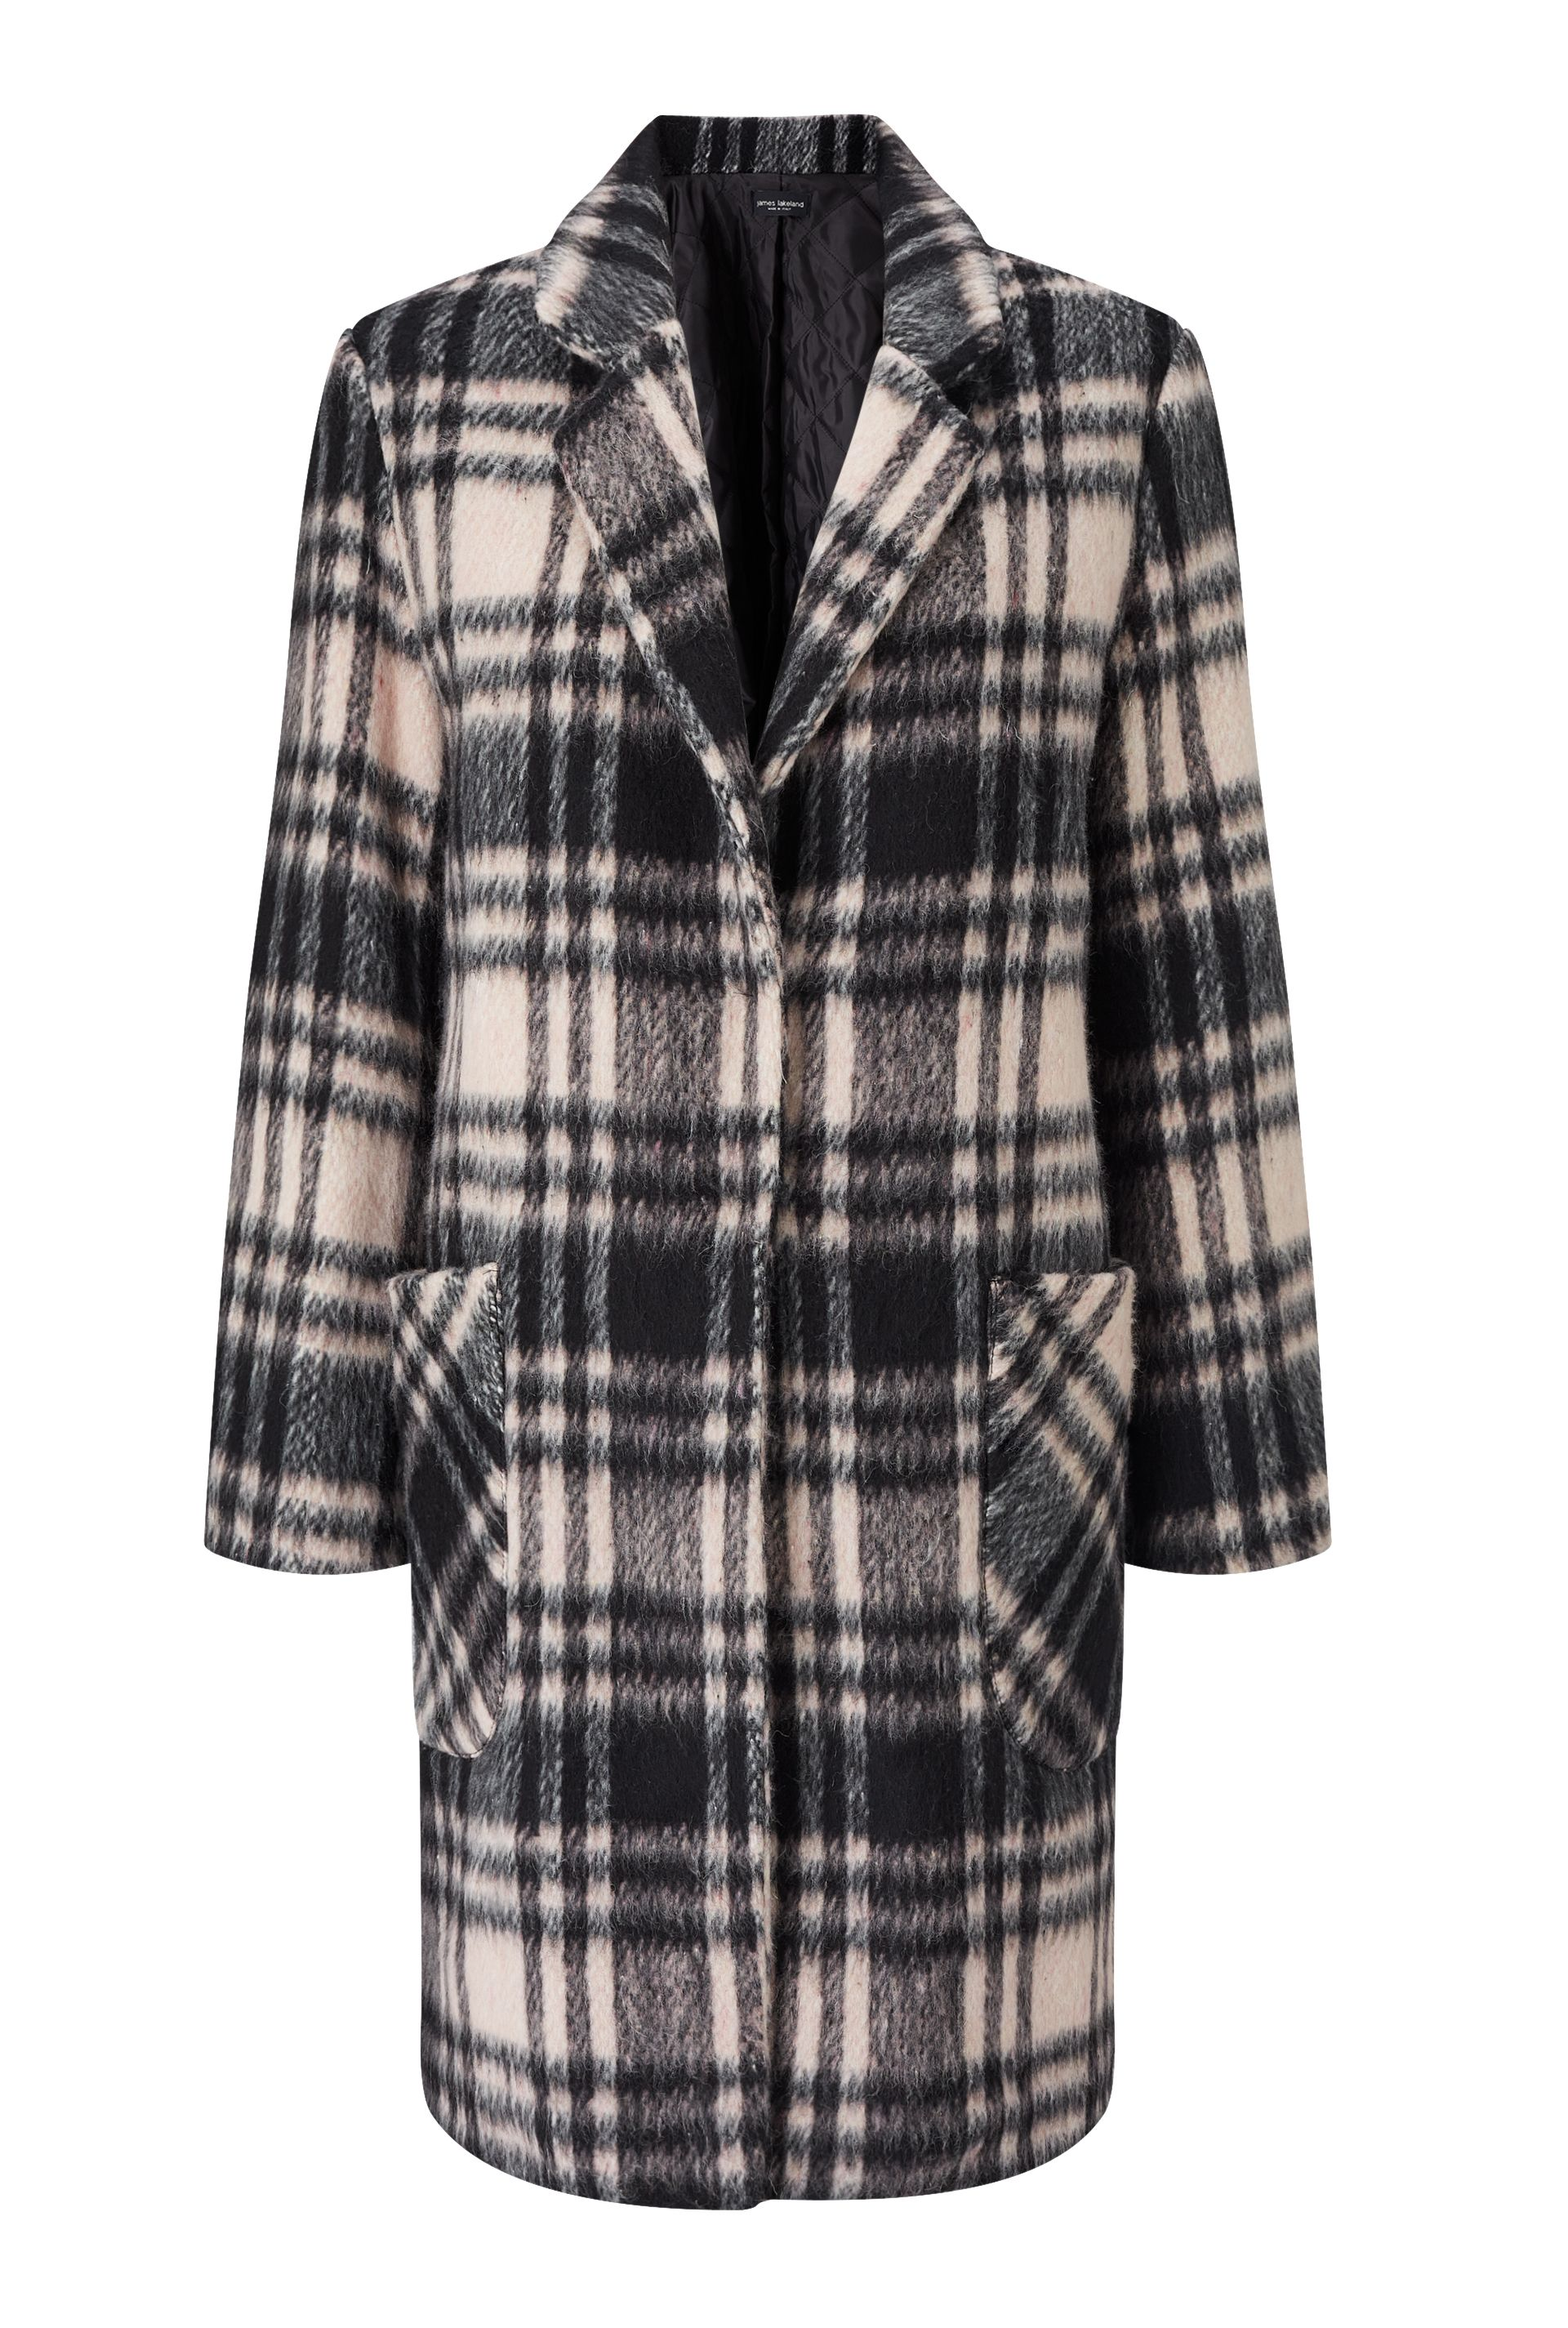 1920s Style Coats James Lakeland Check Wool Mix Coat Pink £98.00 AT vintagedancer.com